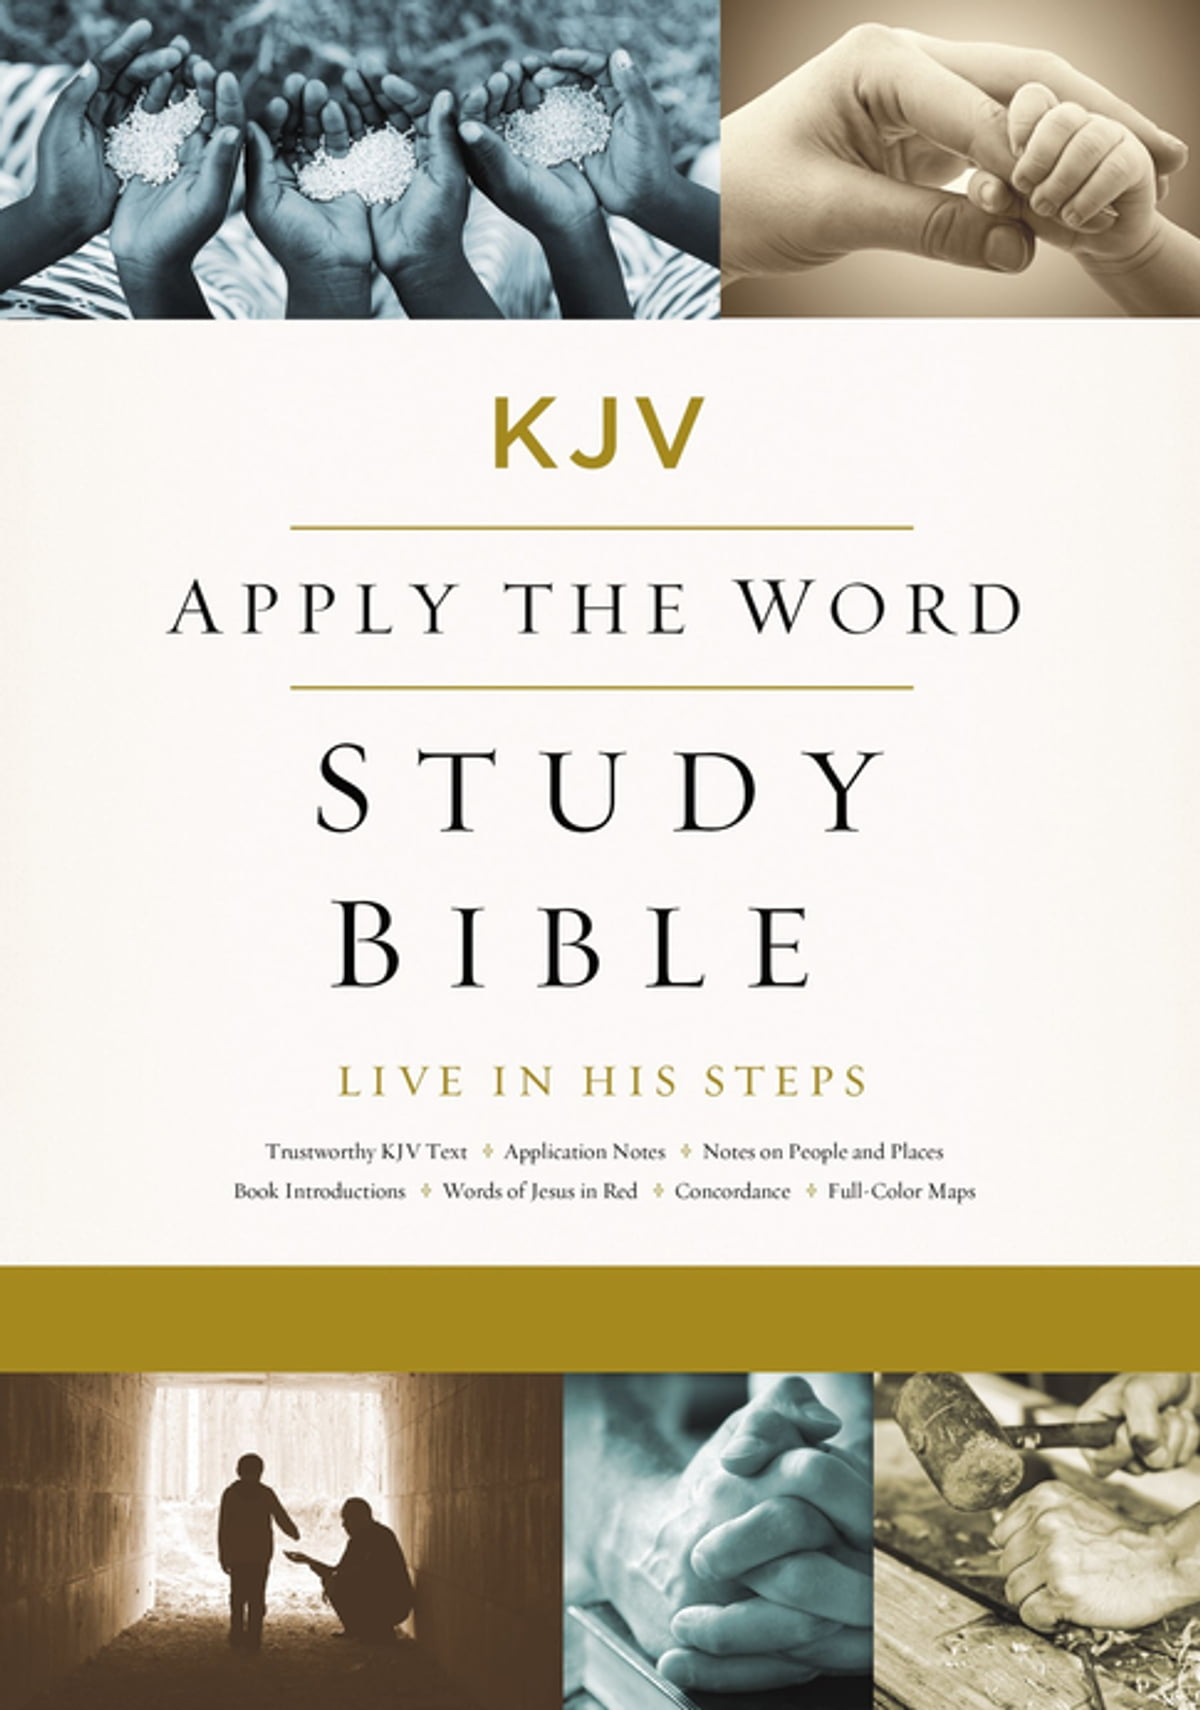 KJV, Apply the Word Study Bible, Ebook, Red Letter Edition eBook by ...